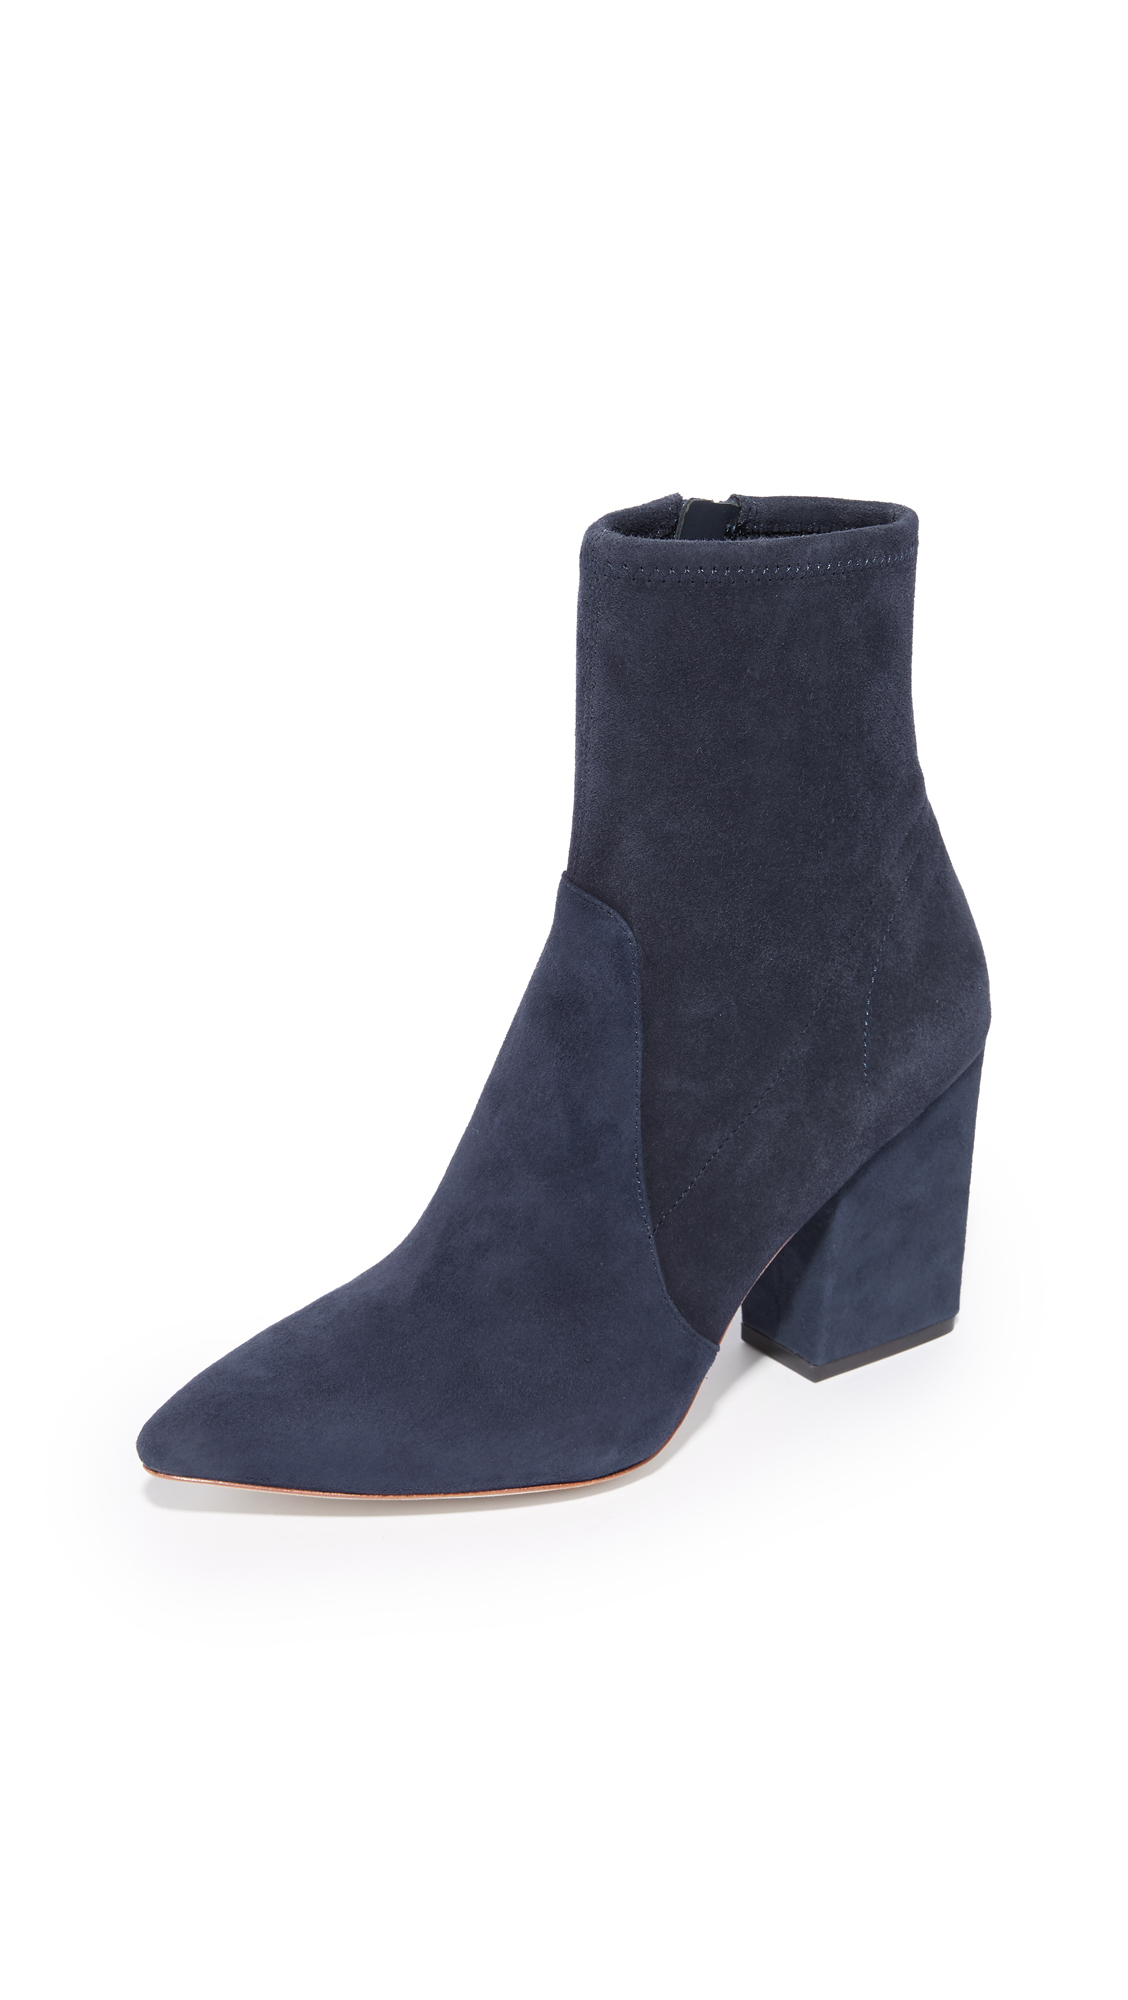 Loeffler Randall Isla Stretch Pointed Toe Booties - Eclipse